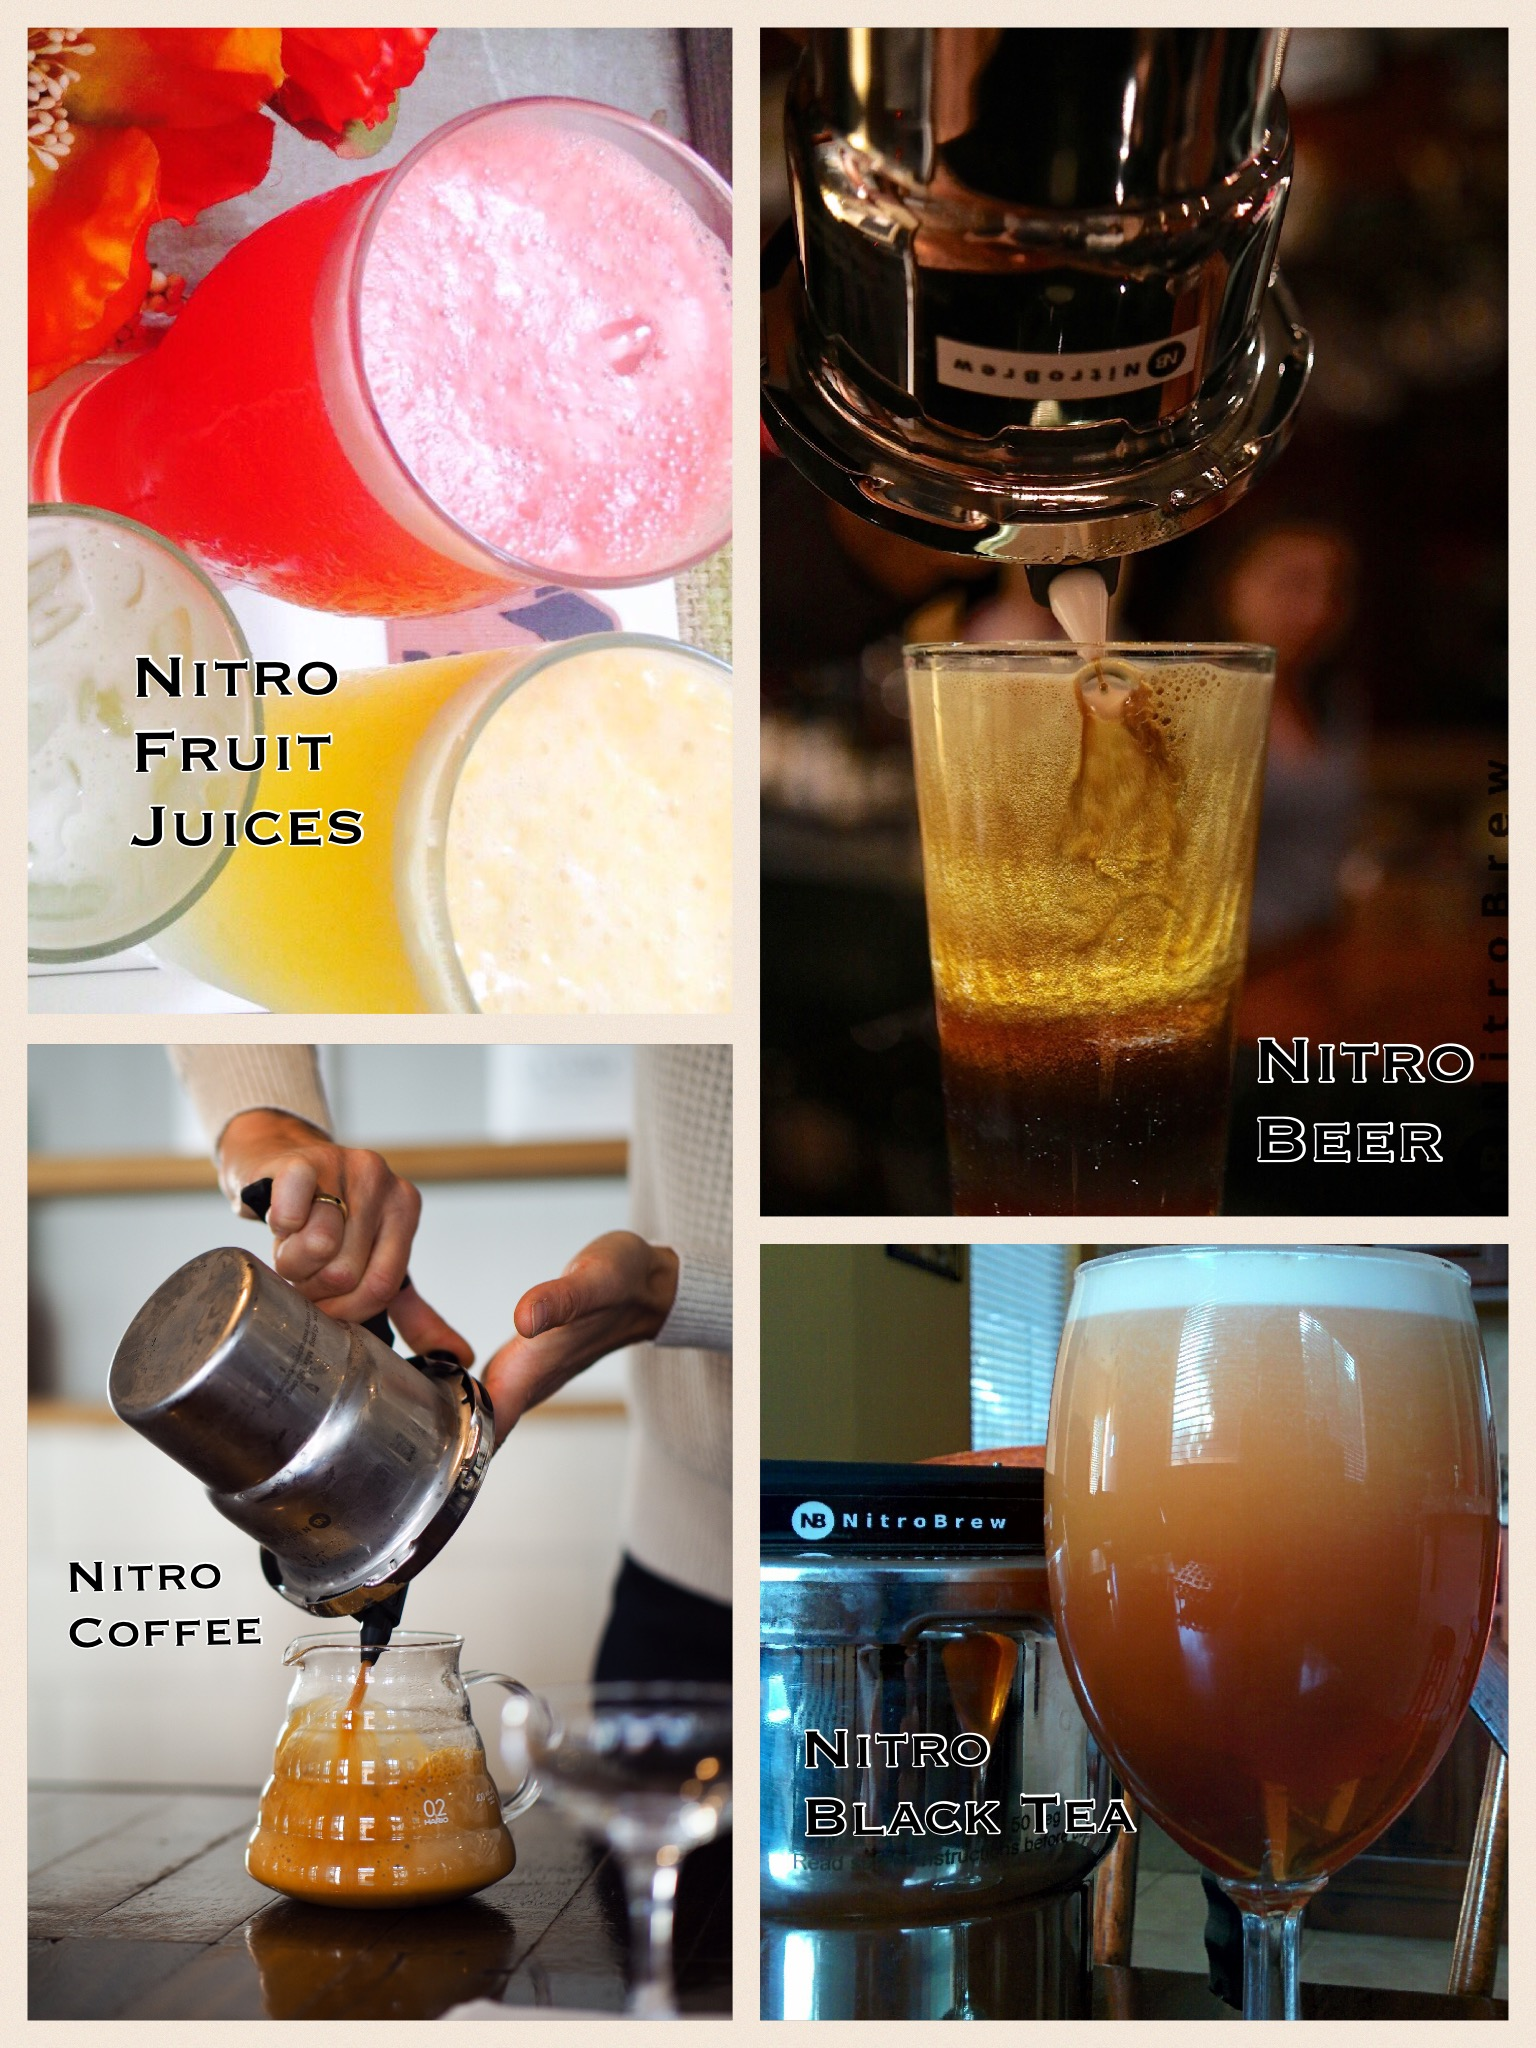 Nitro cold brew machine